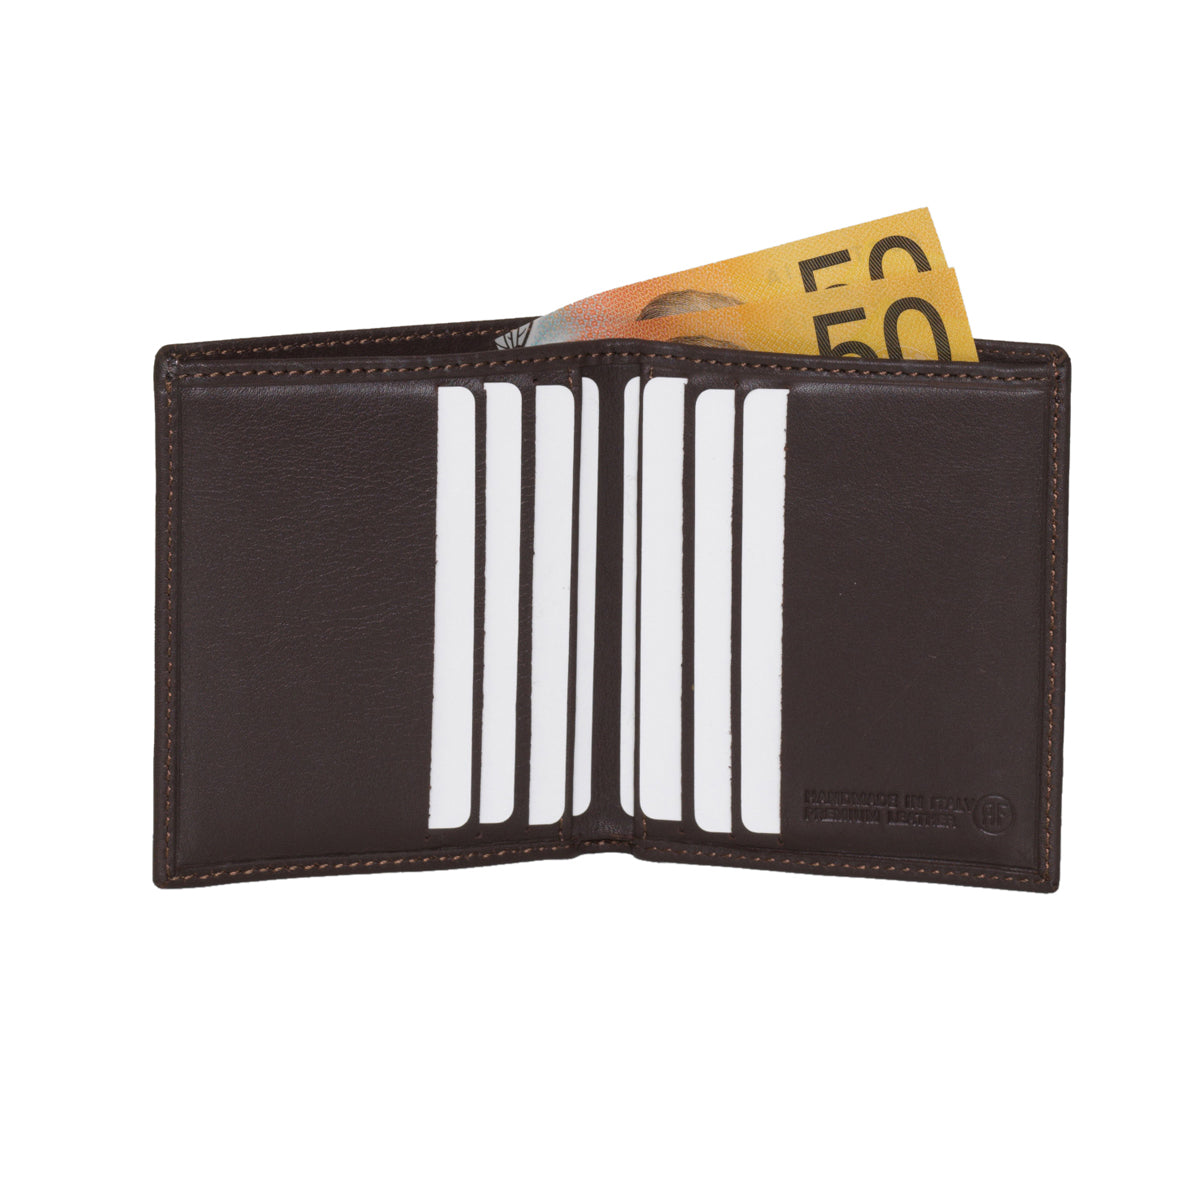 Verdi Chocolate - Slim Bi-fold Leather Men's Wallet